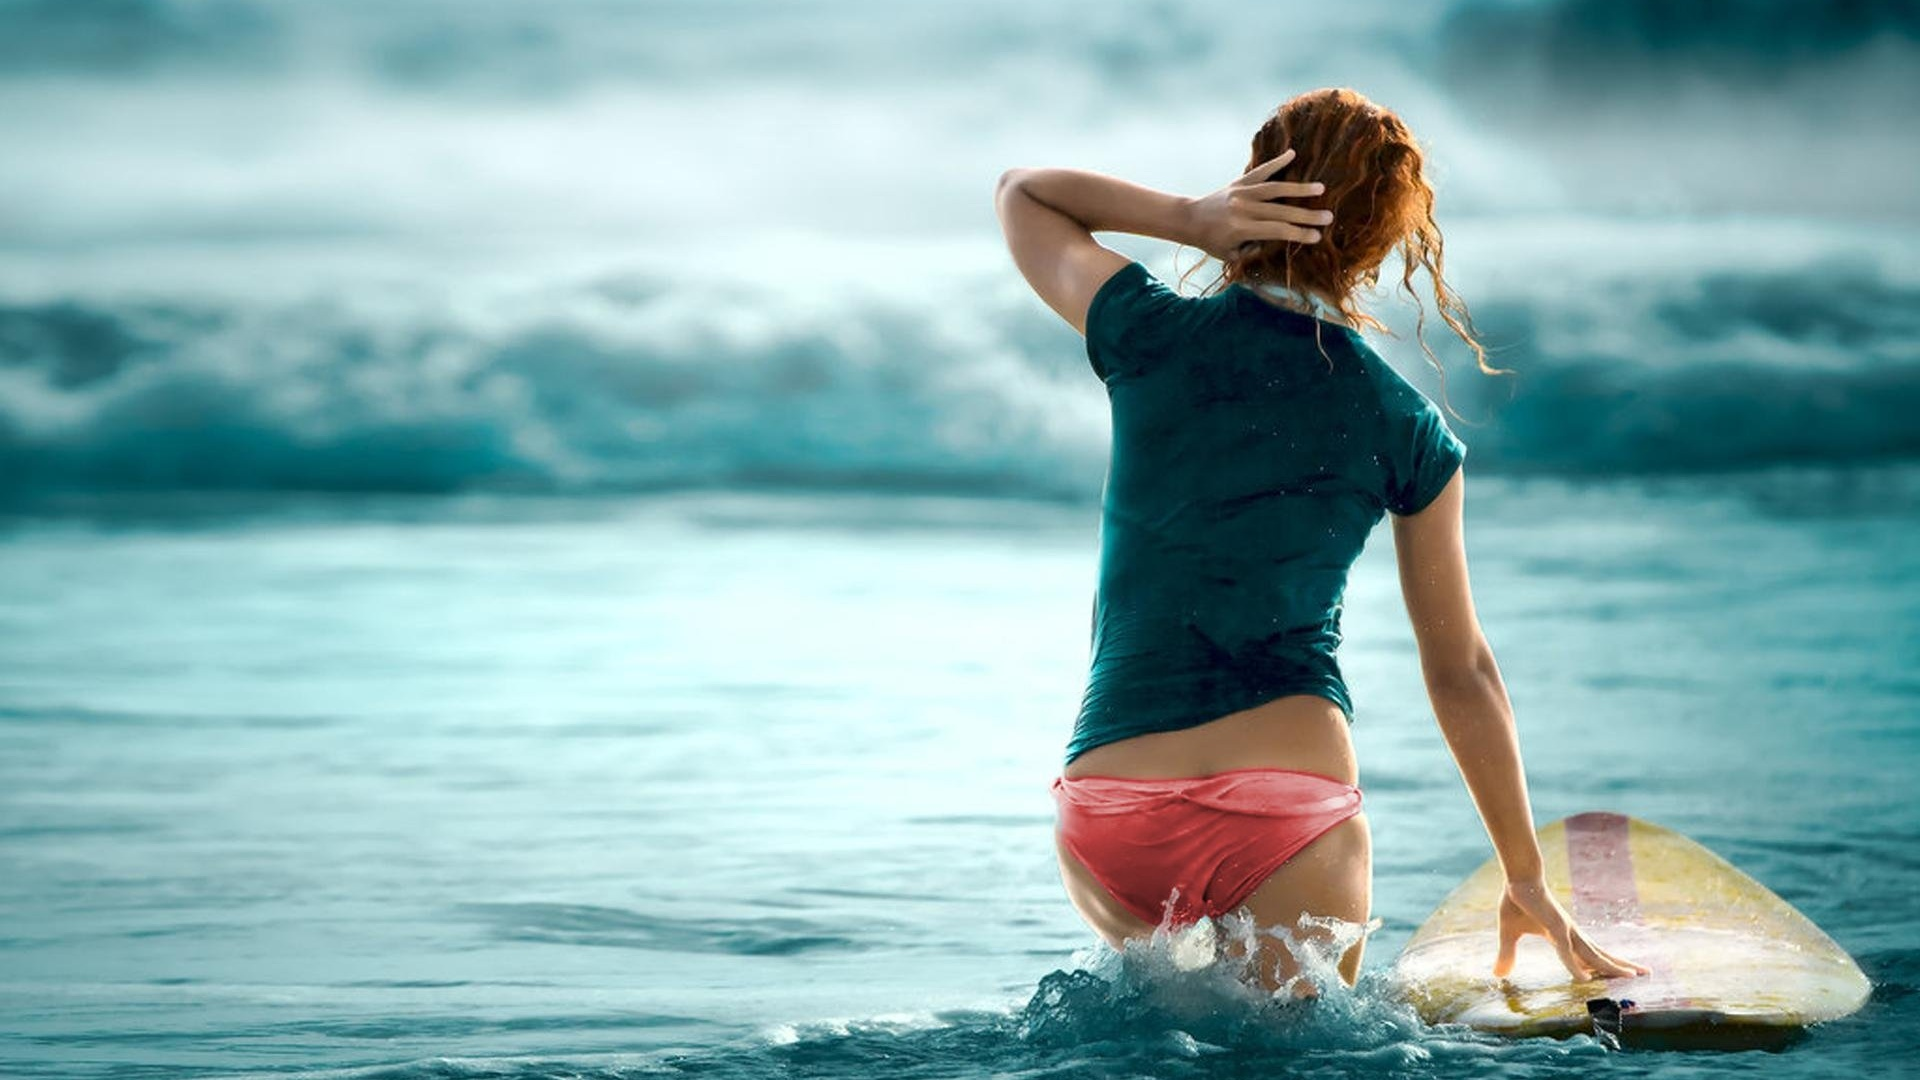 1920x1080 Surf Girl Desktop Pc And Mac Wallpaper